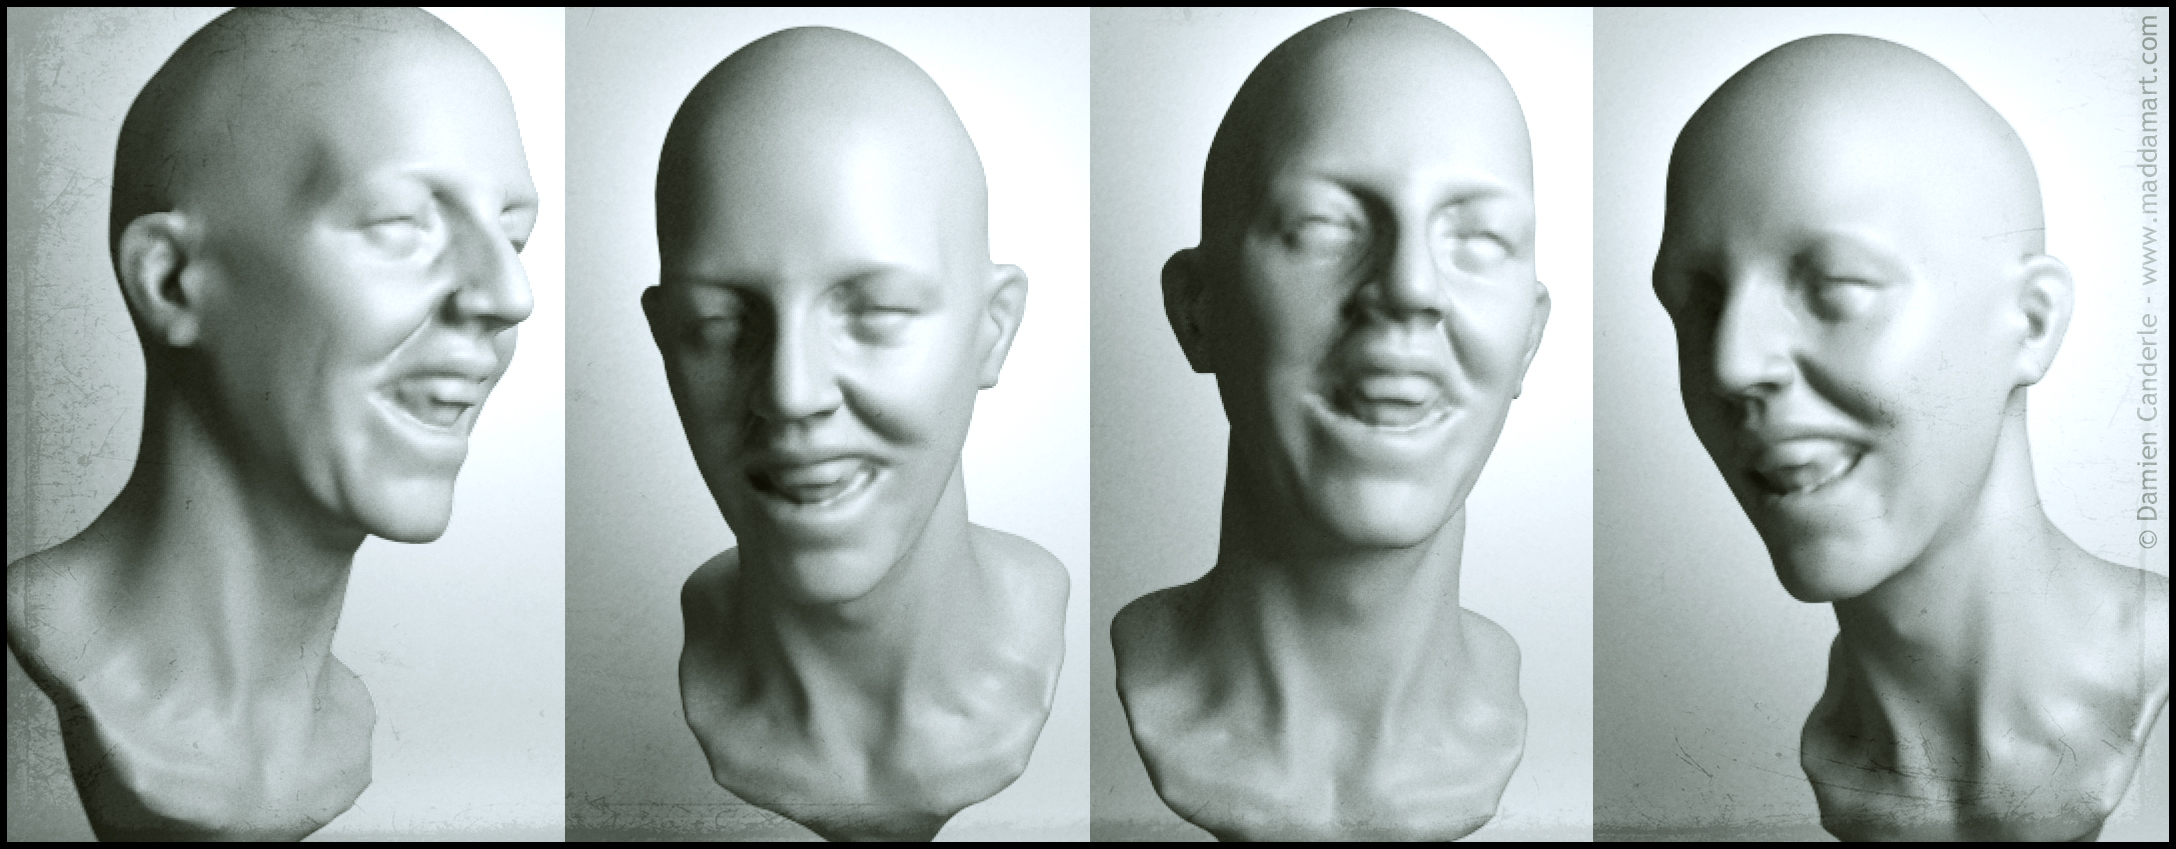 damien_canderle_speed_sculpting_14